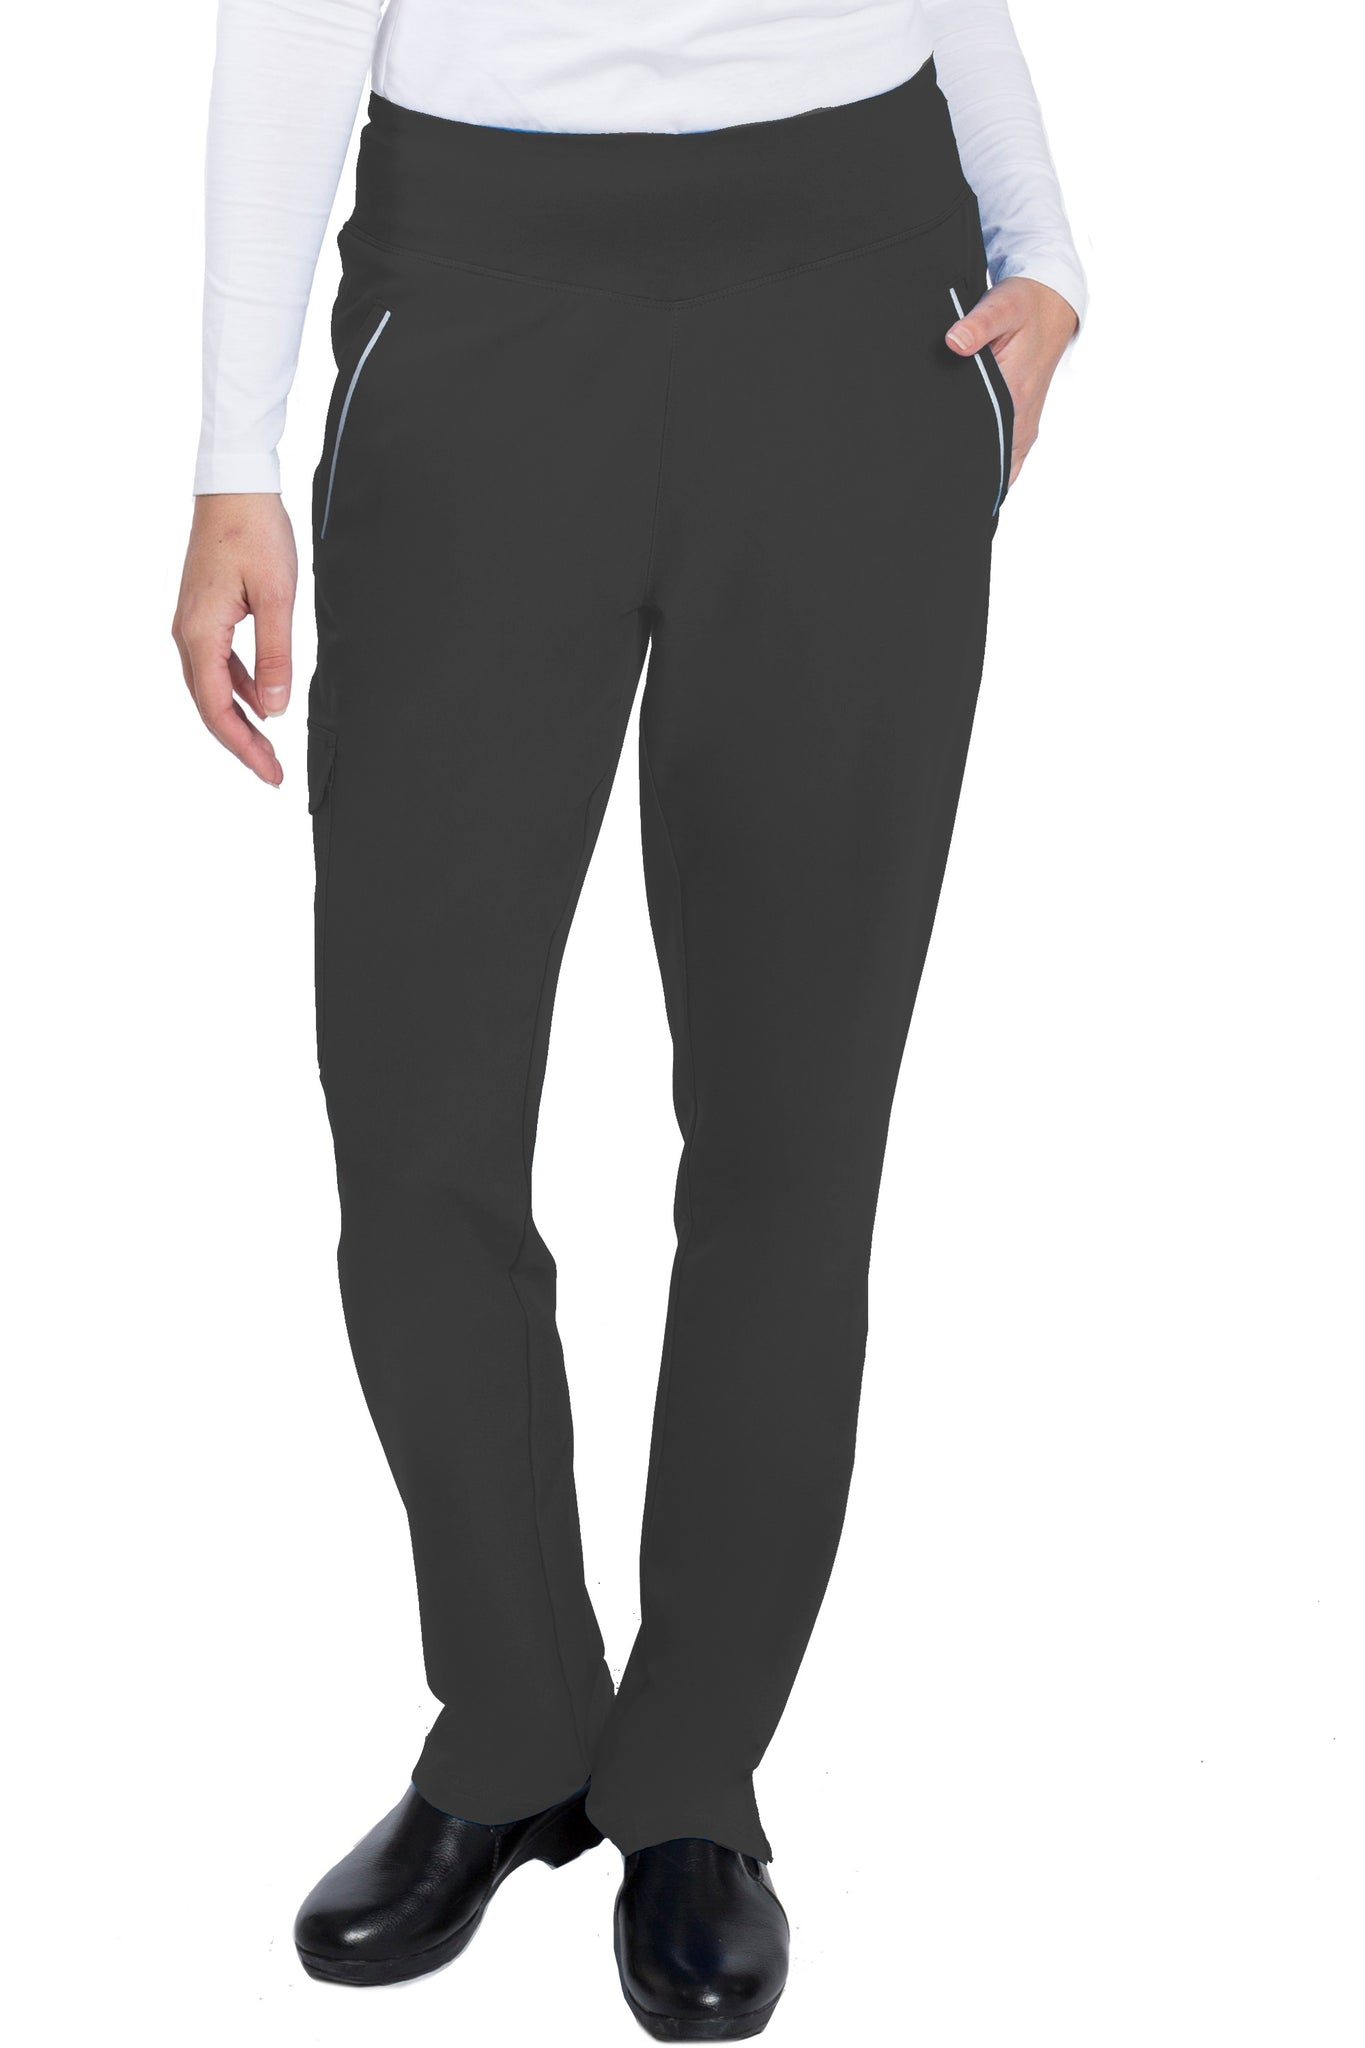 Healing Hands HH360 Naomi Yoga Waist Scrub Pant Black - Parker's Clothing and Shoes